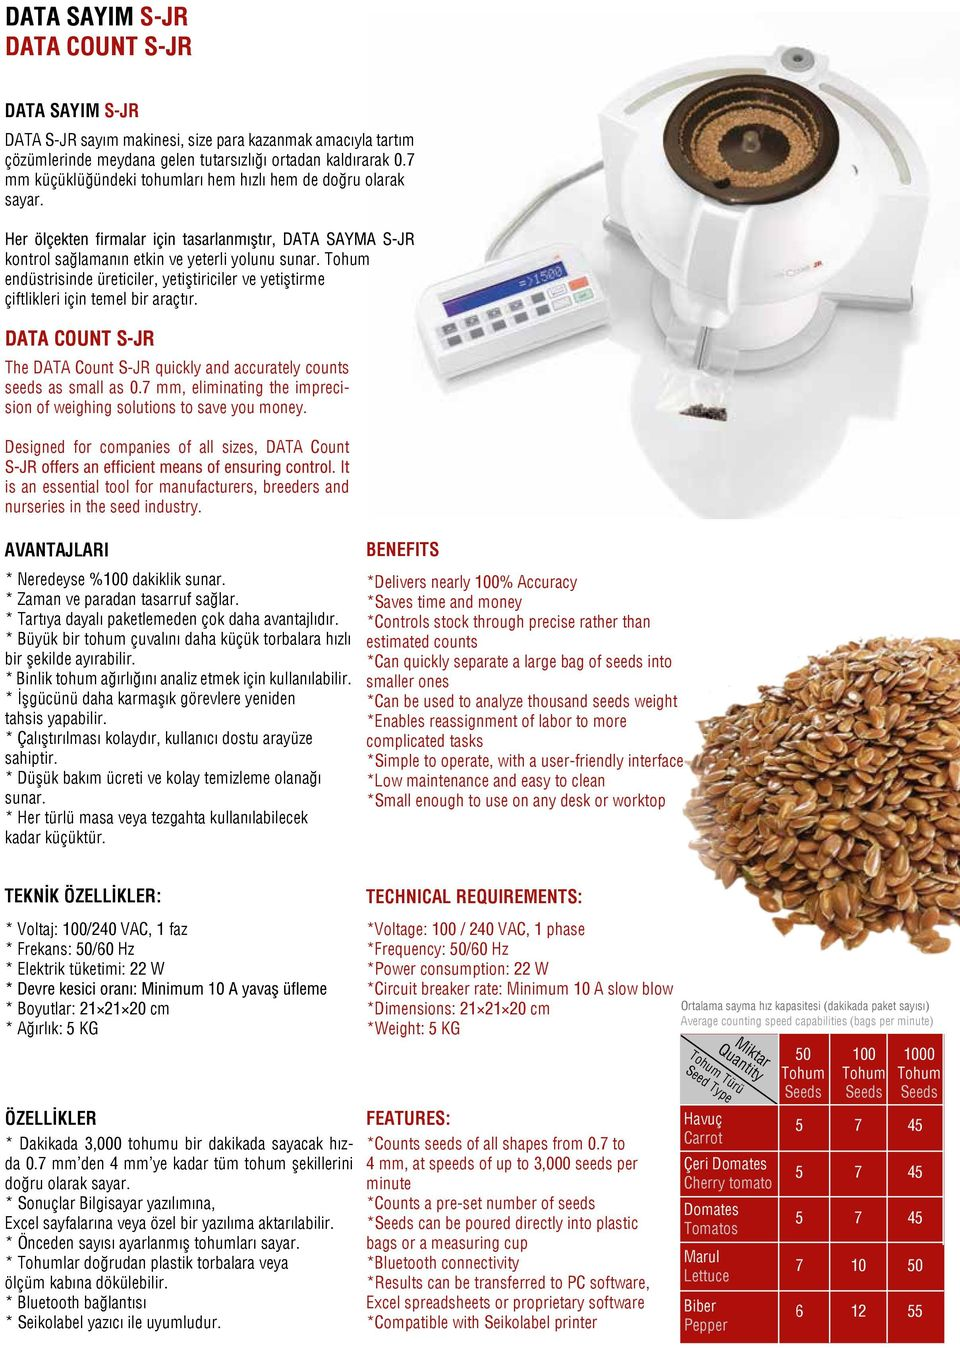 endüstrisinde üreticiler, yetiştiriciler ve yetiştirme çiftlikleri için temel bir araçtır. DATA COUNT S-JR The DATA Count S-JR quickly and accurately counts seeds as small as 0.